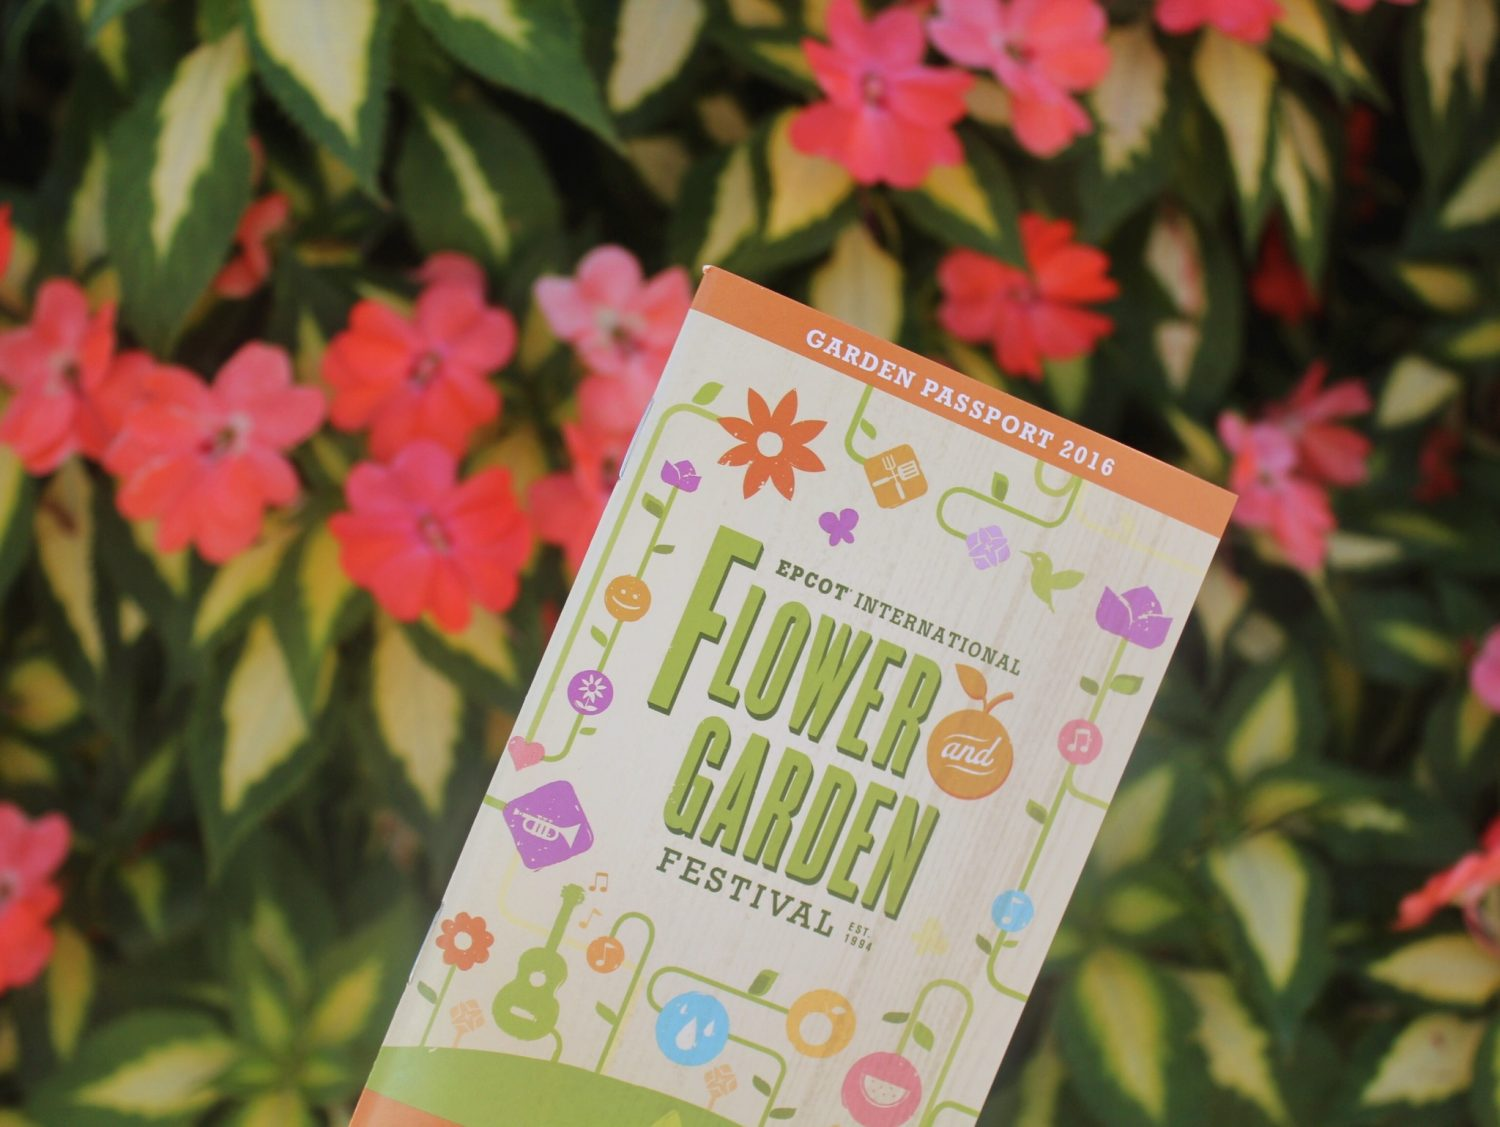 Epcot International Flower and Garden Festival Passport